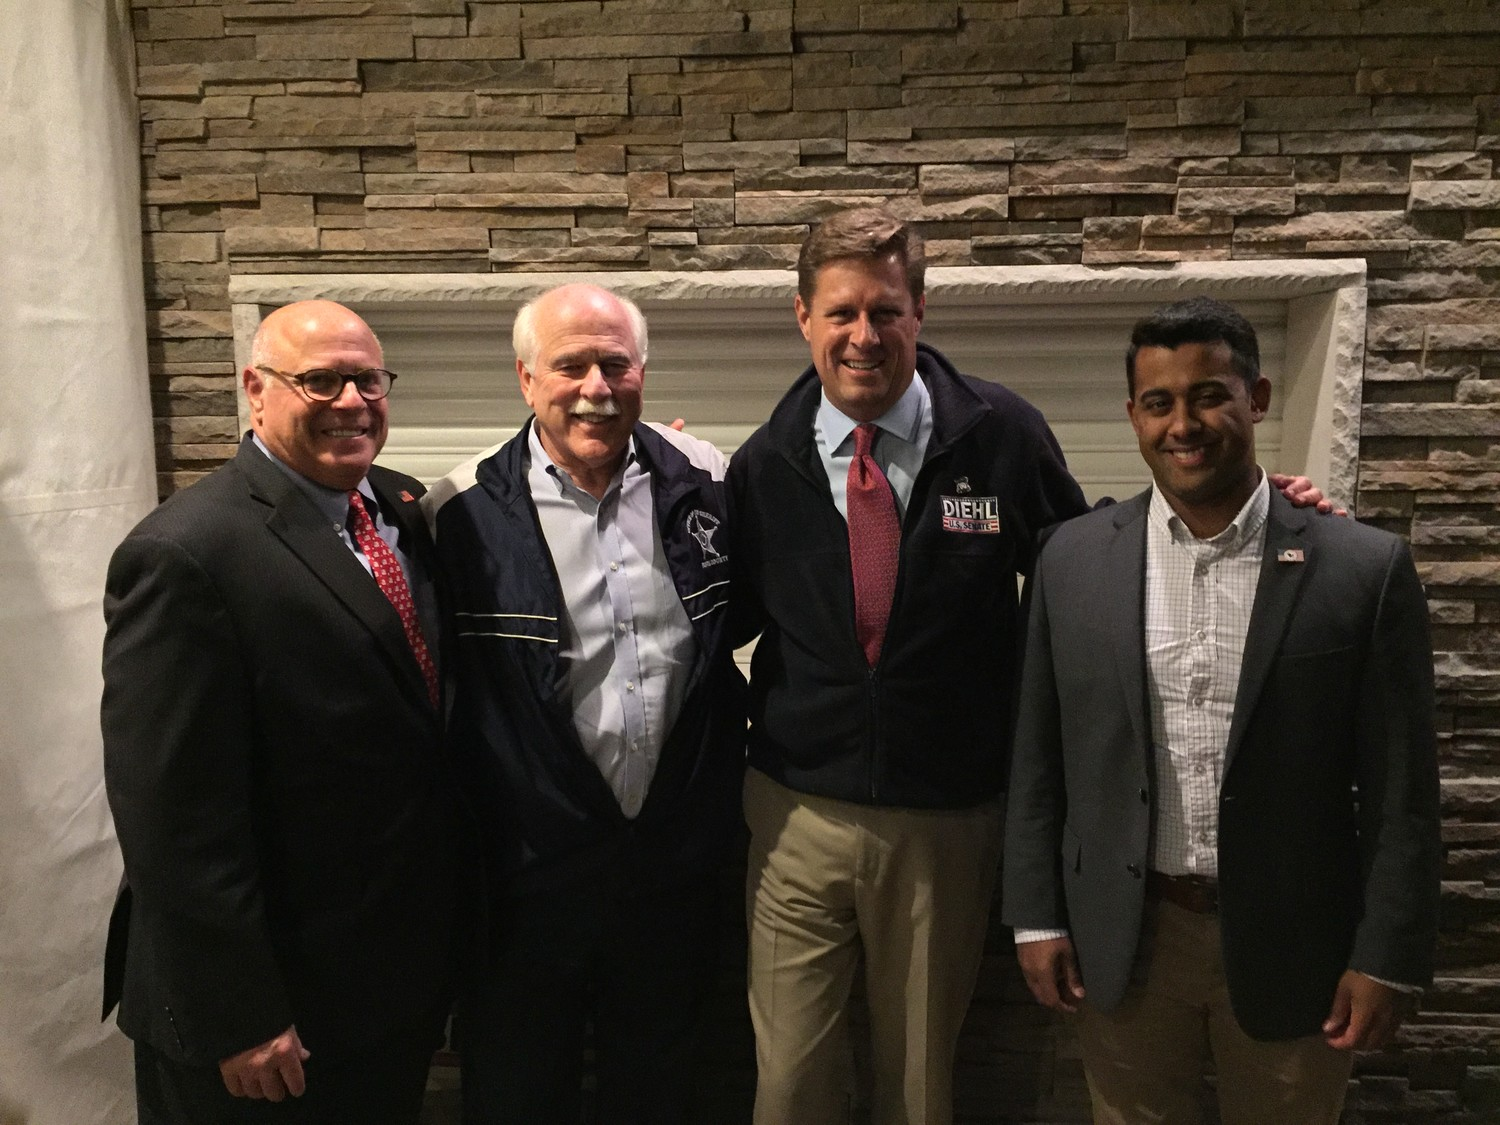 Rep. Steve Howitt, Sheriff Tom Hodgson and Jacob Ventura with Rep. Geoff Diehl